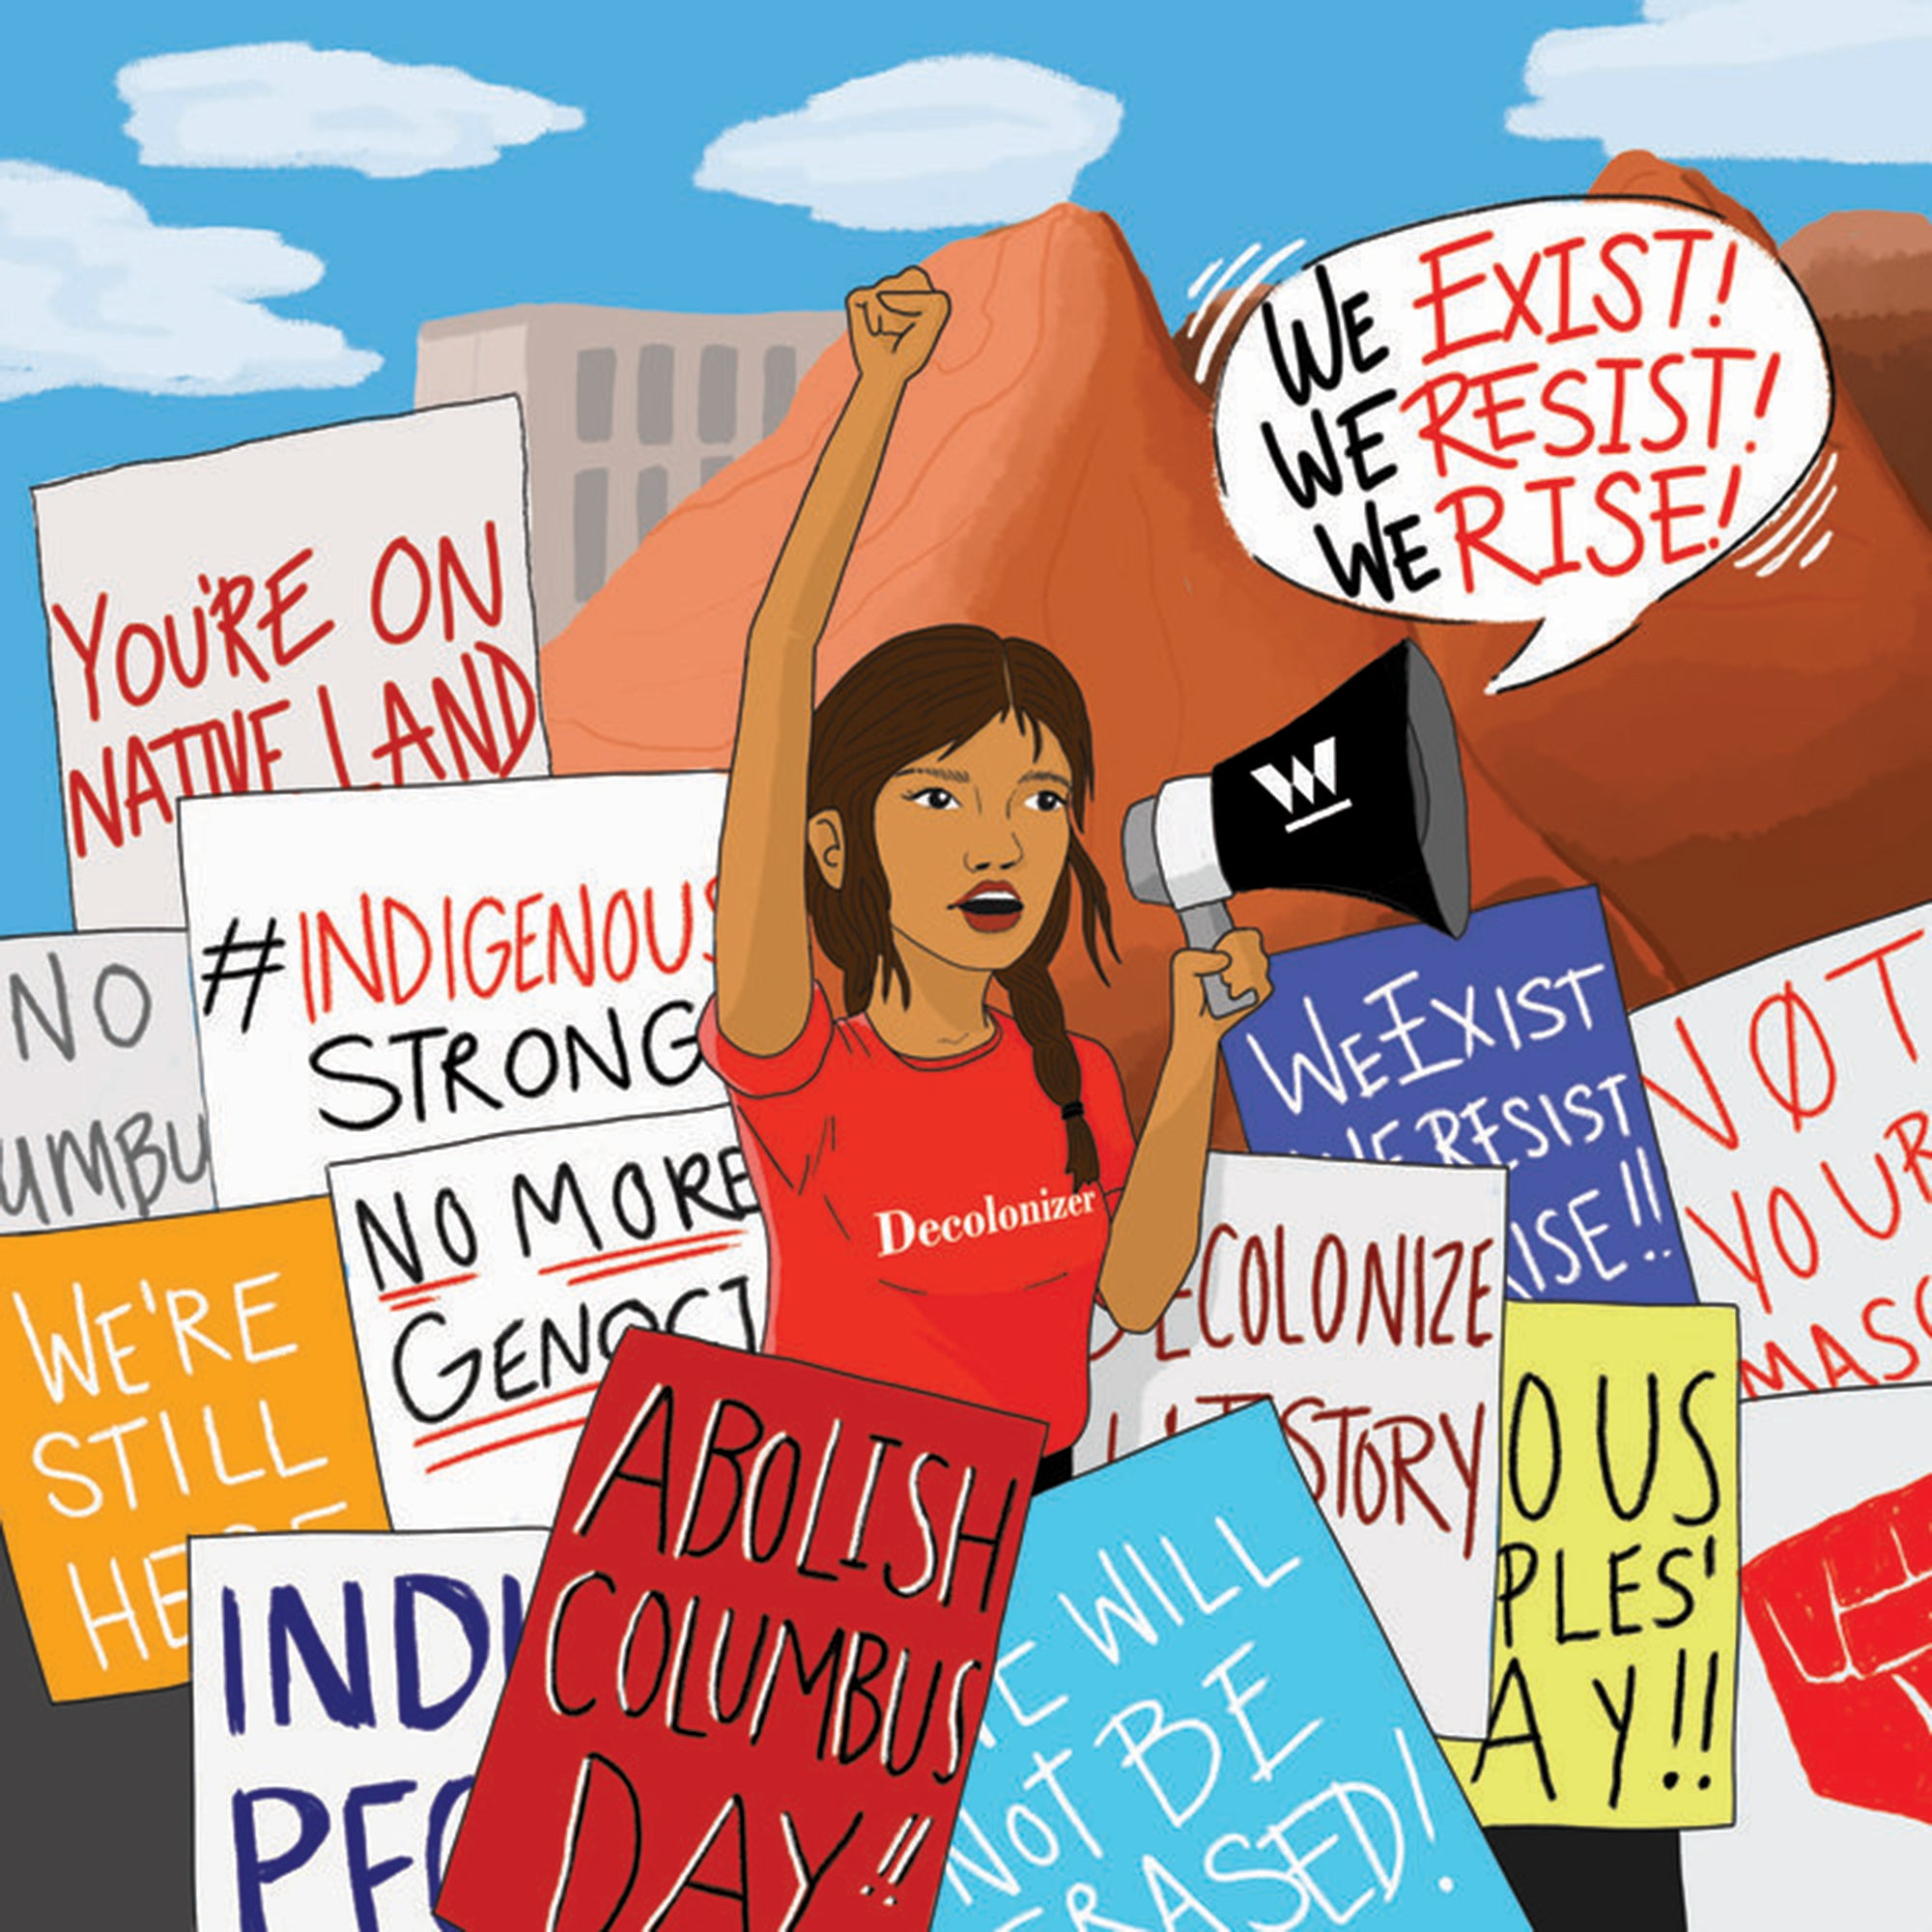 Digital-illustration-of-an-Indigenous-woman-with-braid-and-red-shirt-with-Decolonizer-on-front-raising-fist-with-megaphone-around-protest-signs